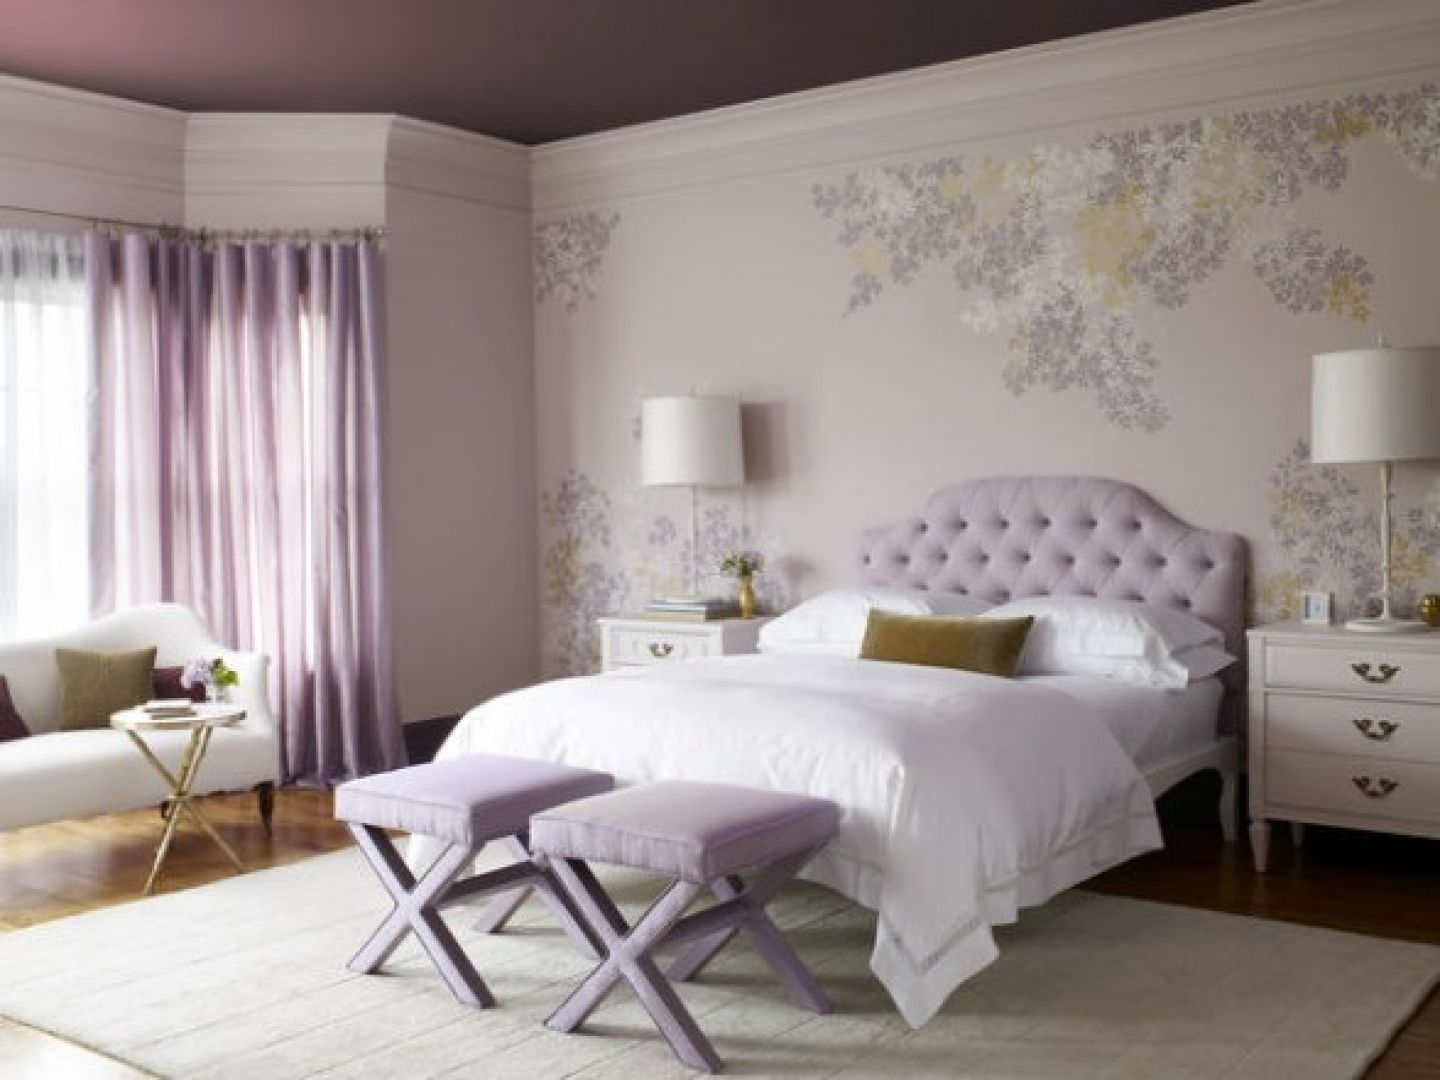 grey Bedroom Designs   Bed bedroom bedroom design bedroom design gray purple  bedroom designs. grey Bedroom Designs   Bed bedroom bedroom design bedroom design